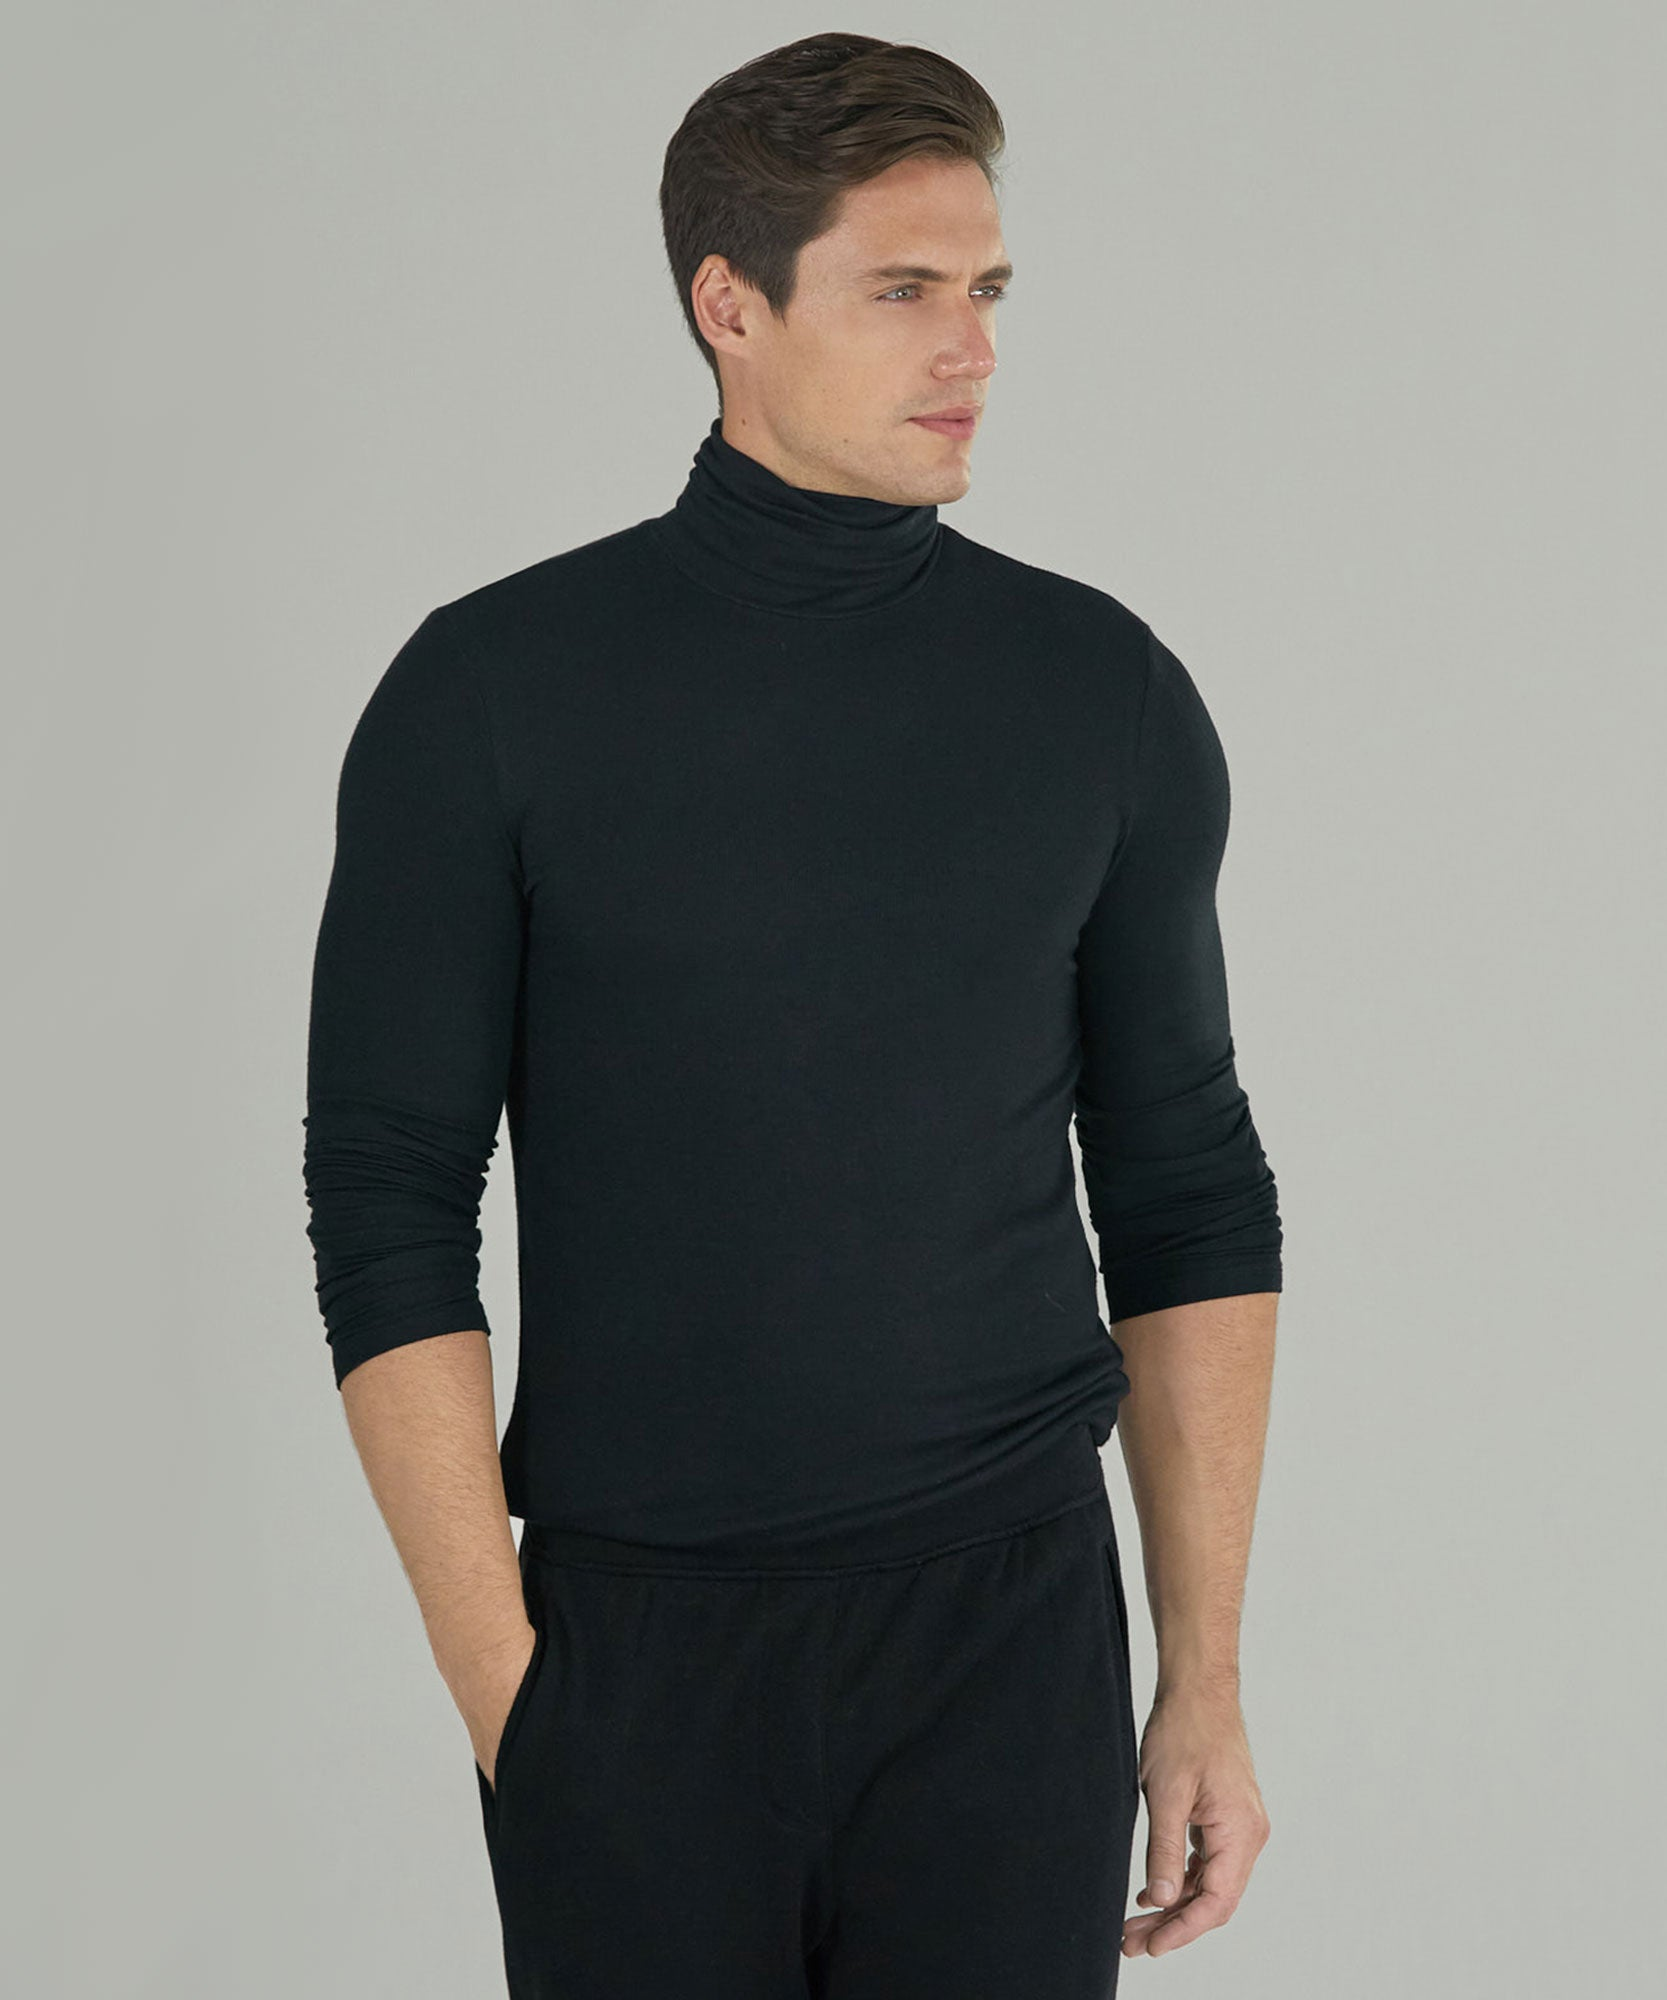 Black Modal Rib Long Sleeve Turtleneck- Men's Ribbed Turtleneck by ATM Anthony Thomas Melillo